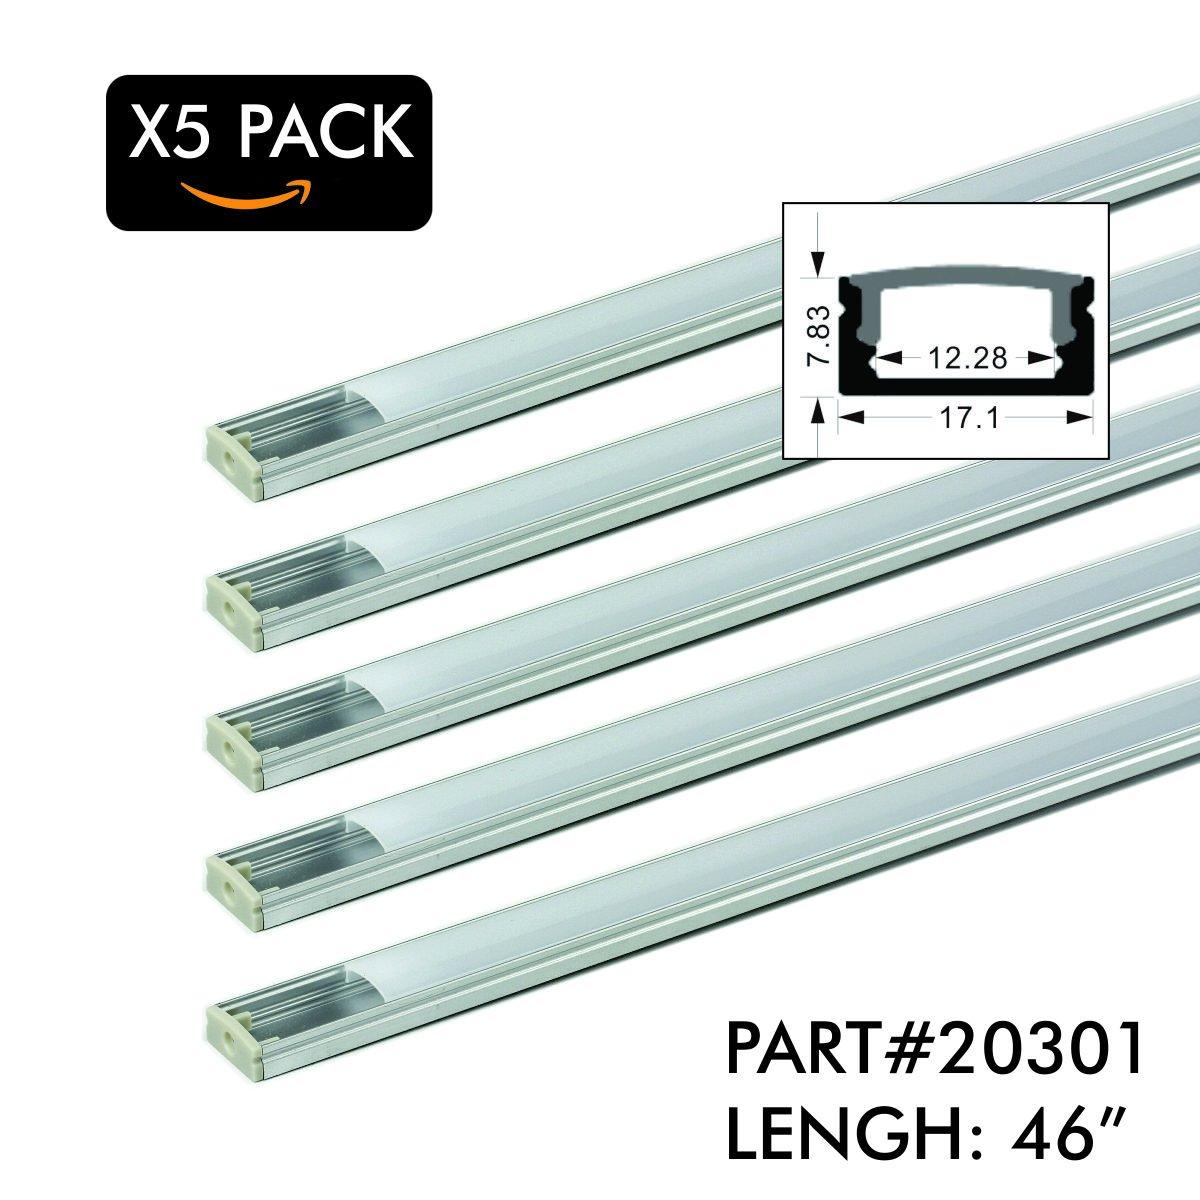 5 Pack of TECLED 4ft. 46'' LED Aluminum Profile U-Shape Channel System with Frosted Diffuse Cover, End Caps, Mounting Clips Surface Mount, Fit 2835/5050 LED Strip 17.1mmx7.3mm Clear Anodized Part#20301